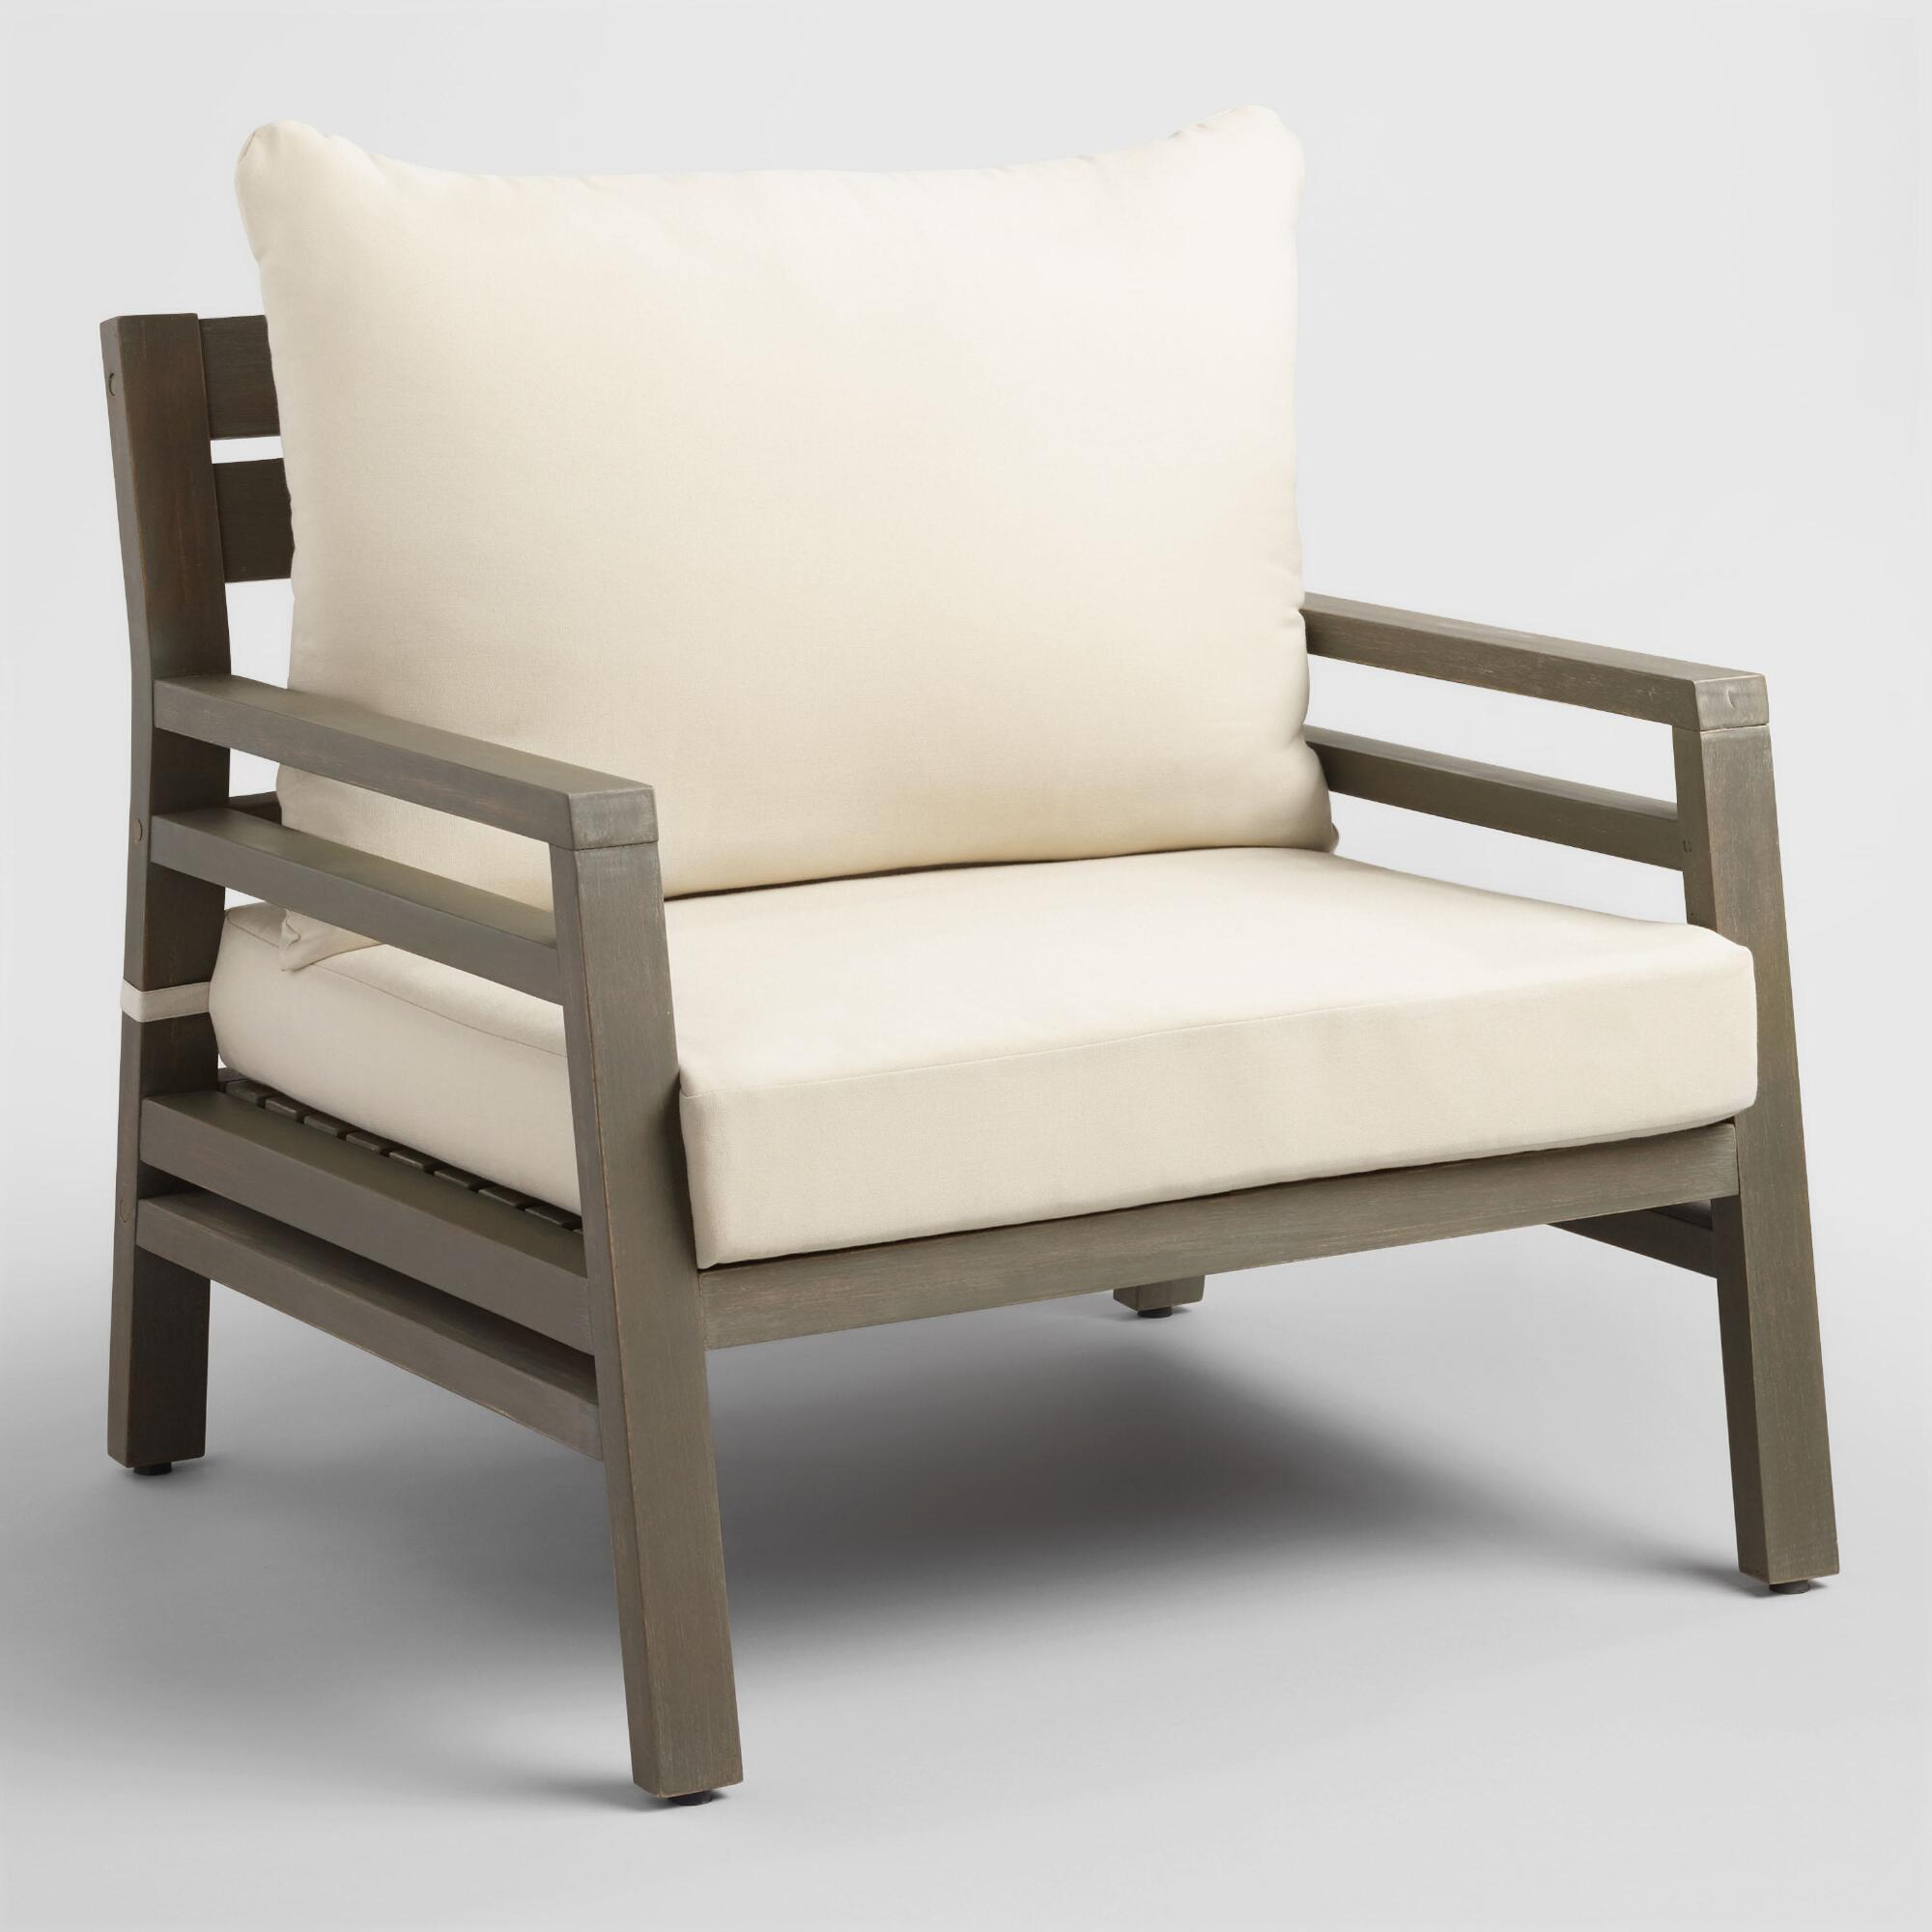 Gray San Sebastian Outdoor Patio Occasional Chair - Wood by World Market